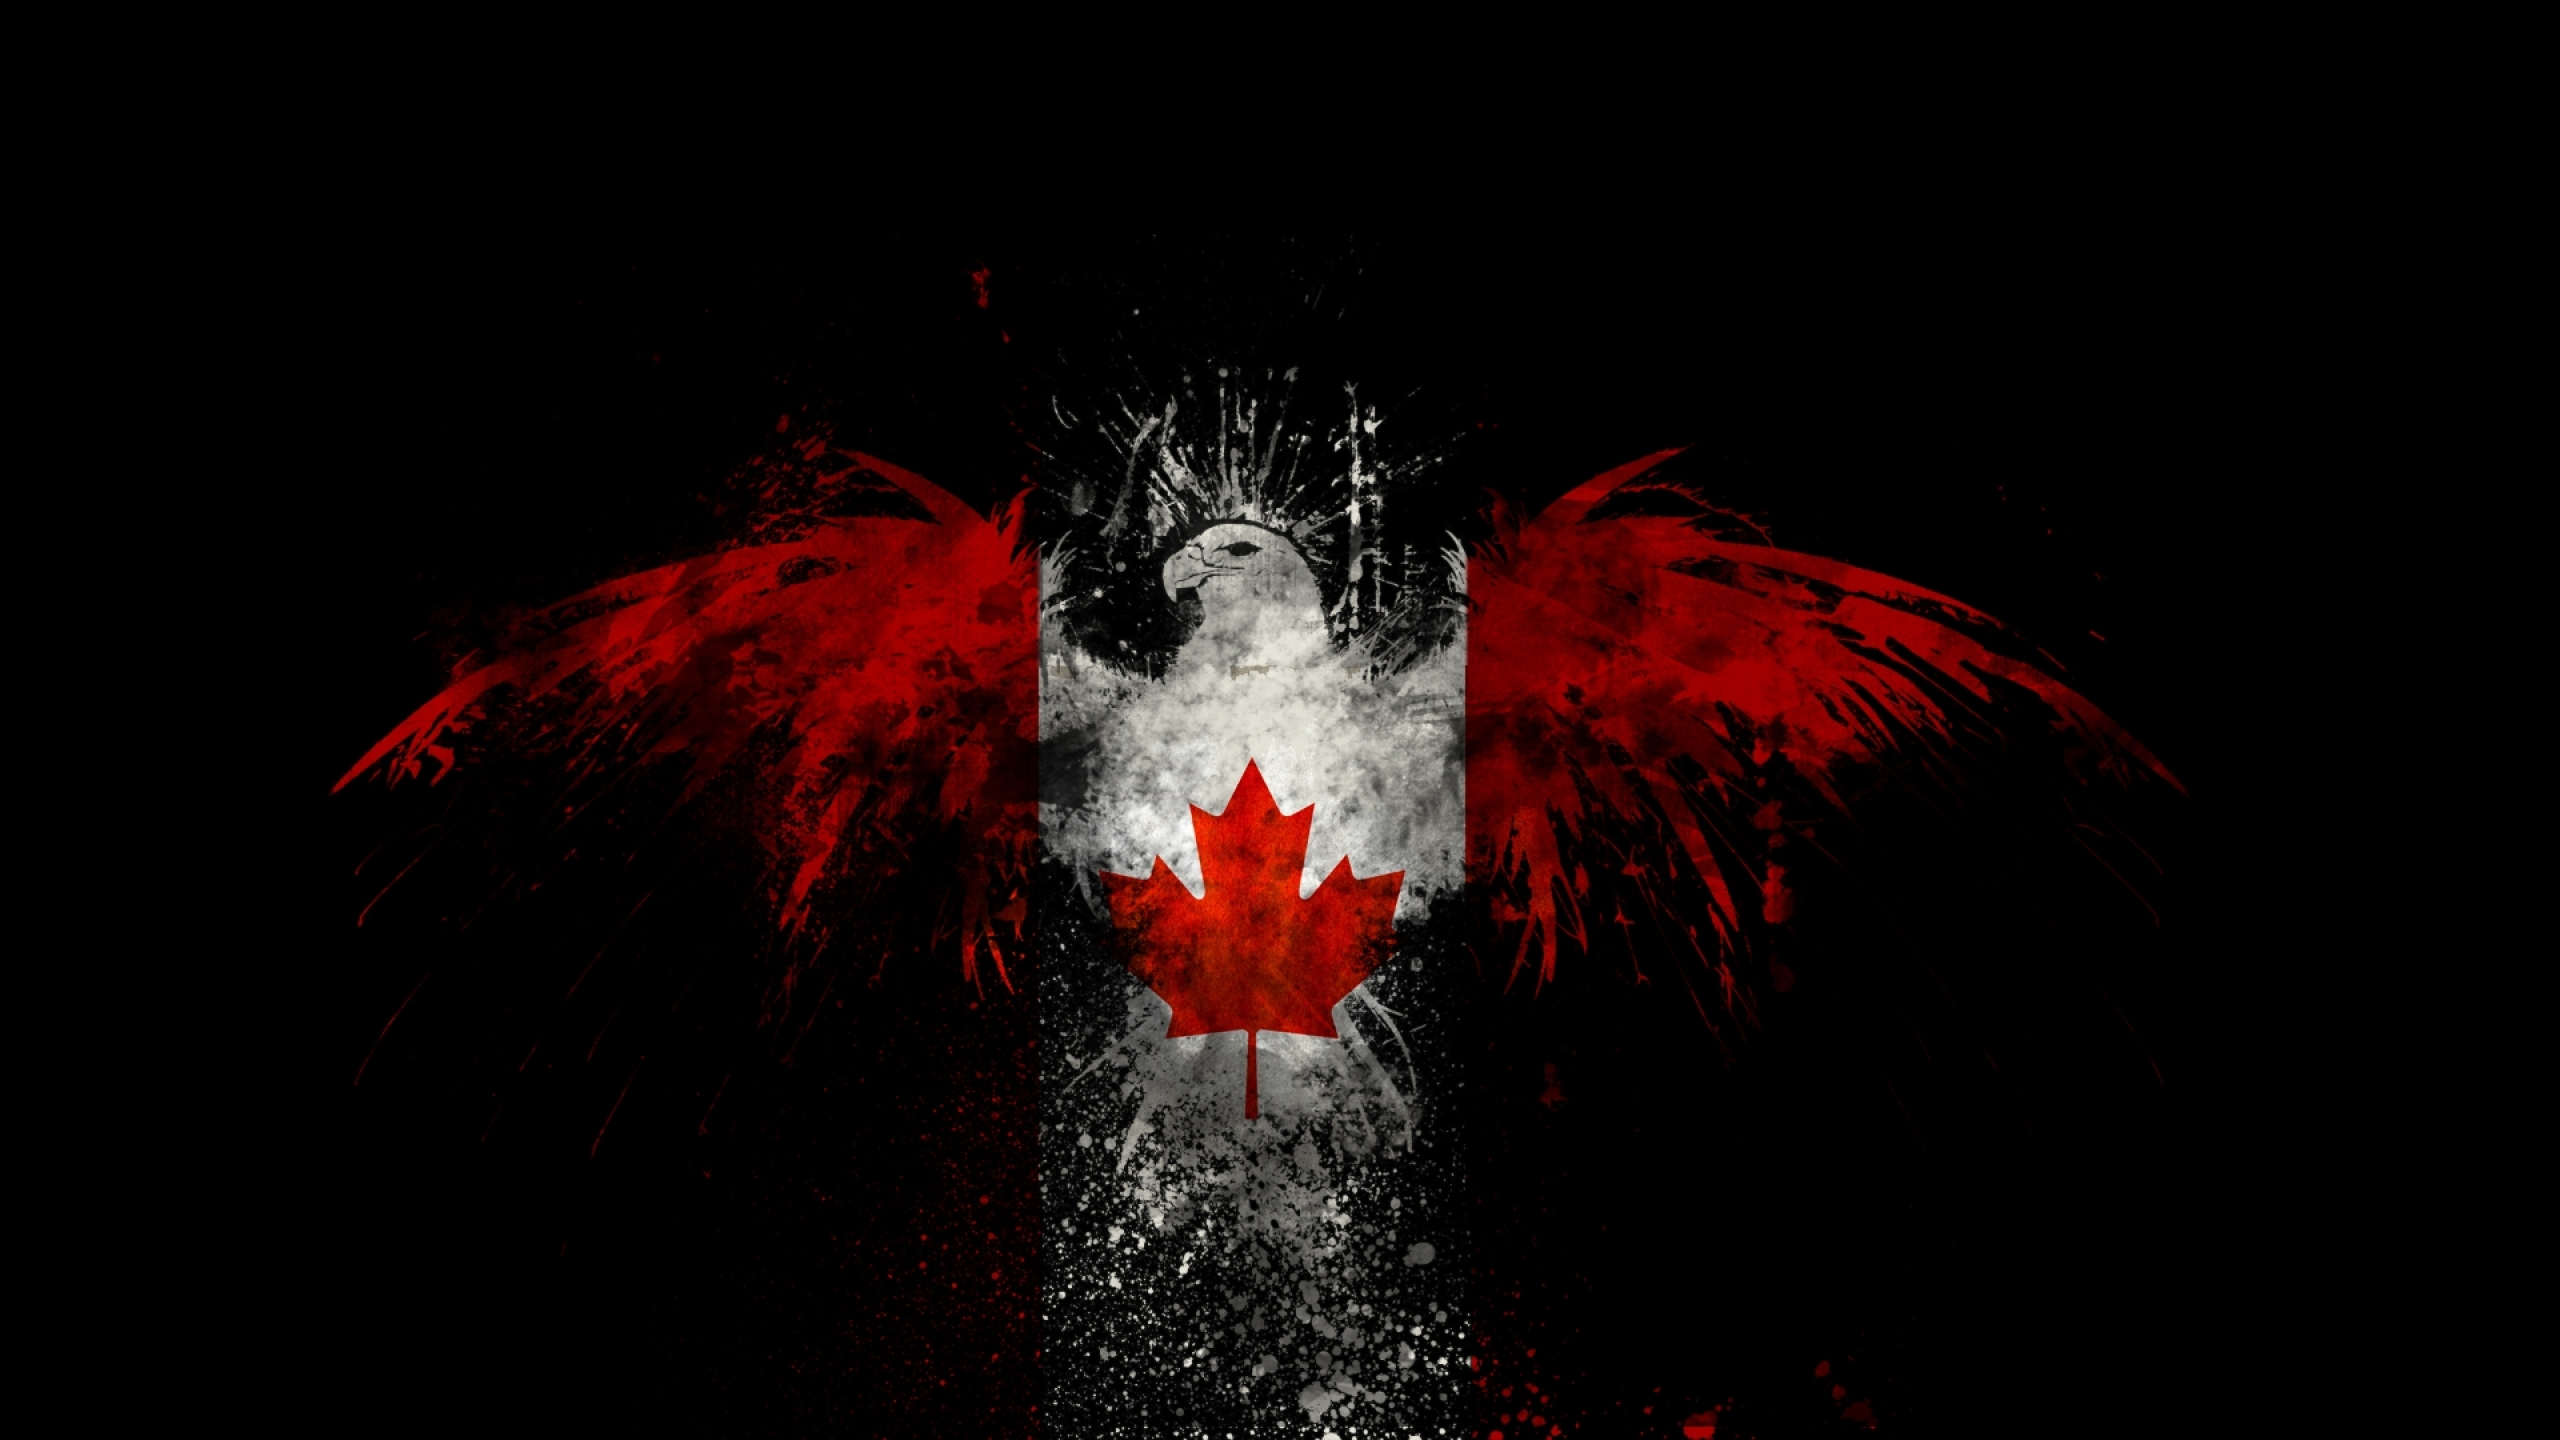 birds canada canadian flag 1920x1080 wallpaper Animals HD Wallpaper 2560x1440